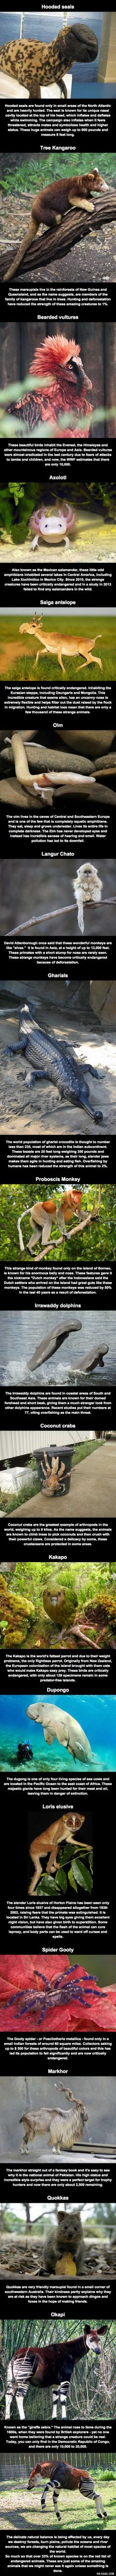 20 animals that you probably don't know exist, that are likely to become extinct before you die